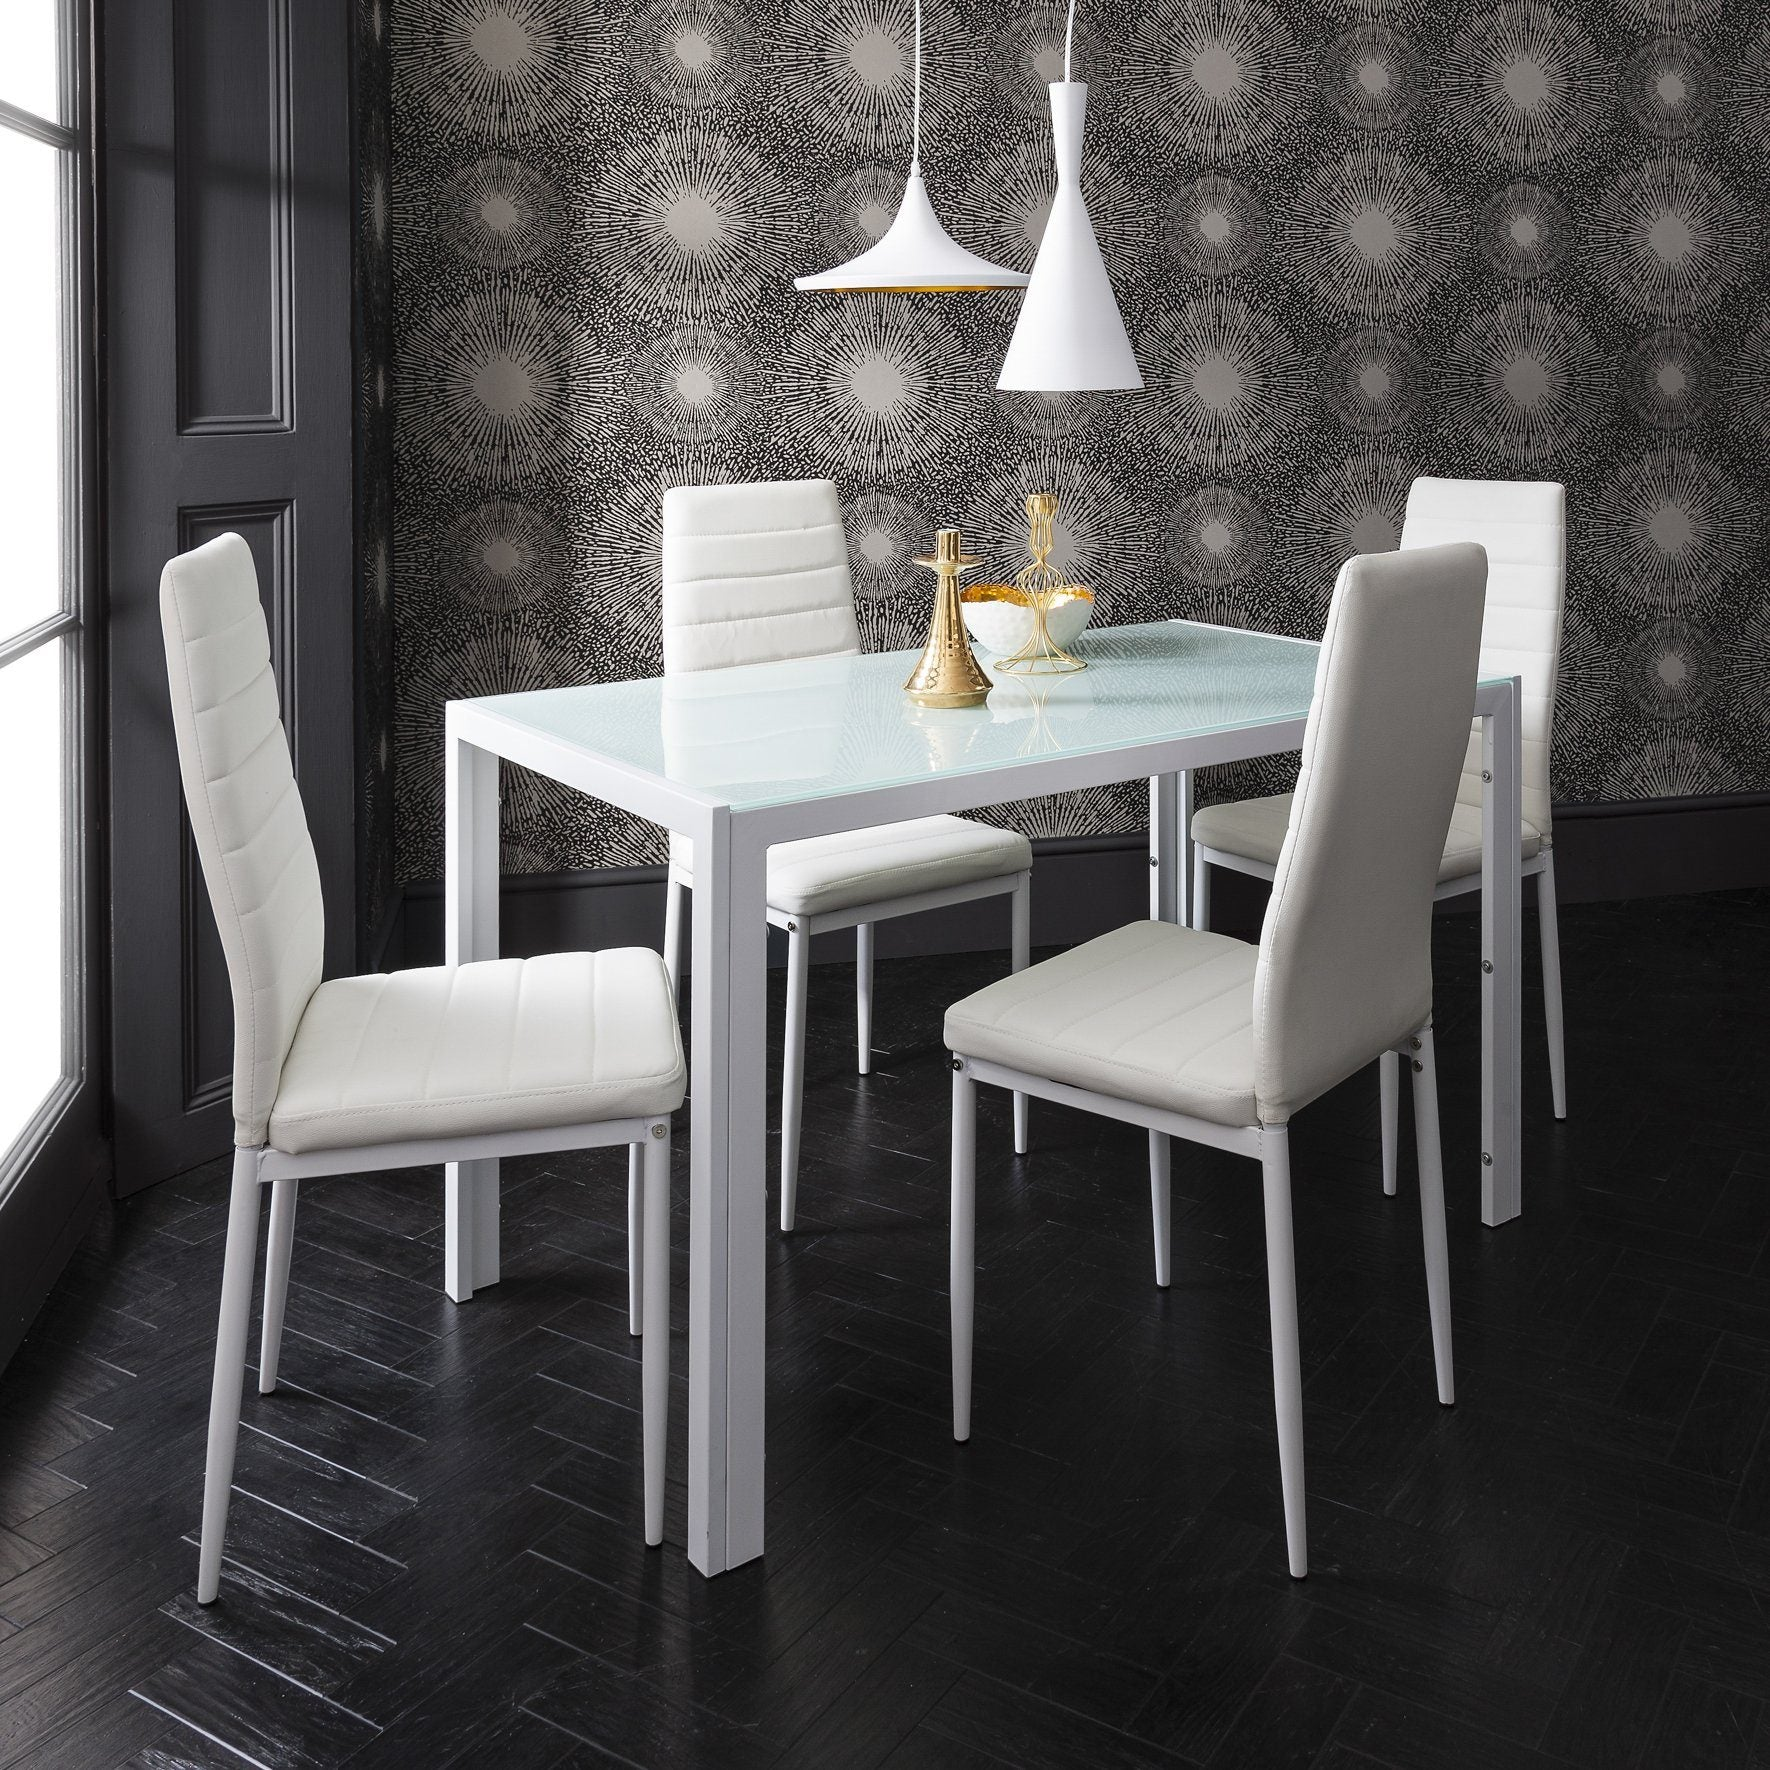 White Dining Table and Chairs - 4 Seater Set - Laura James